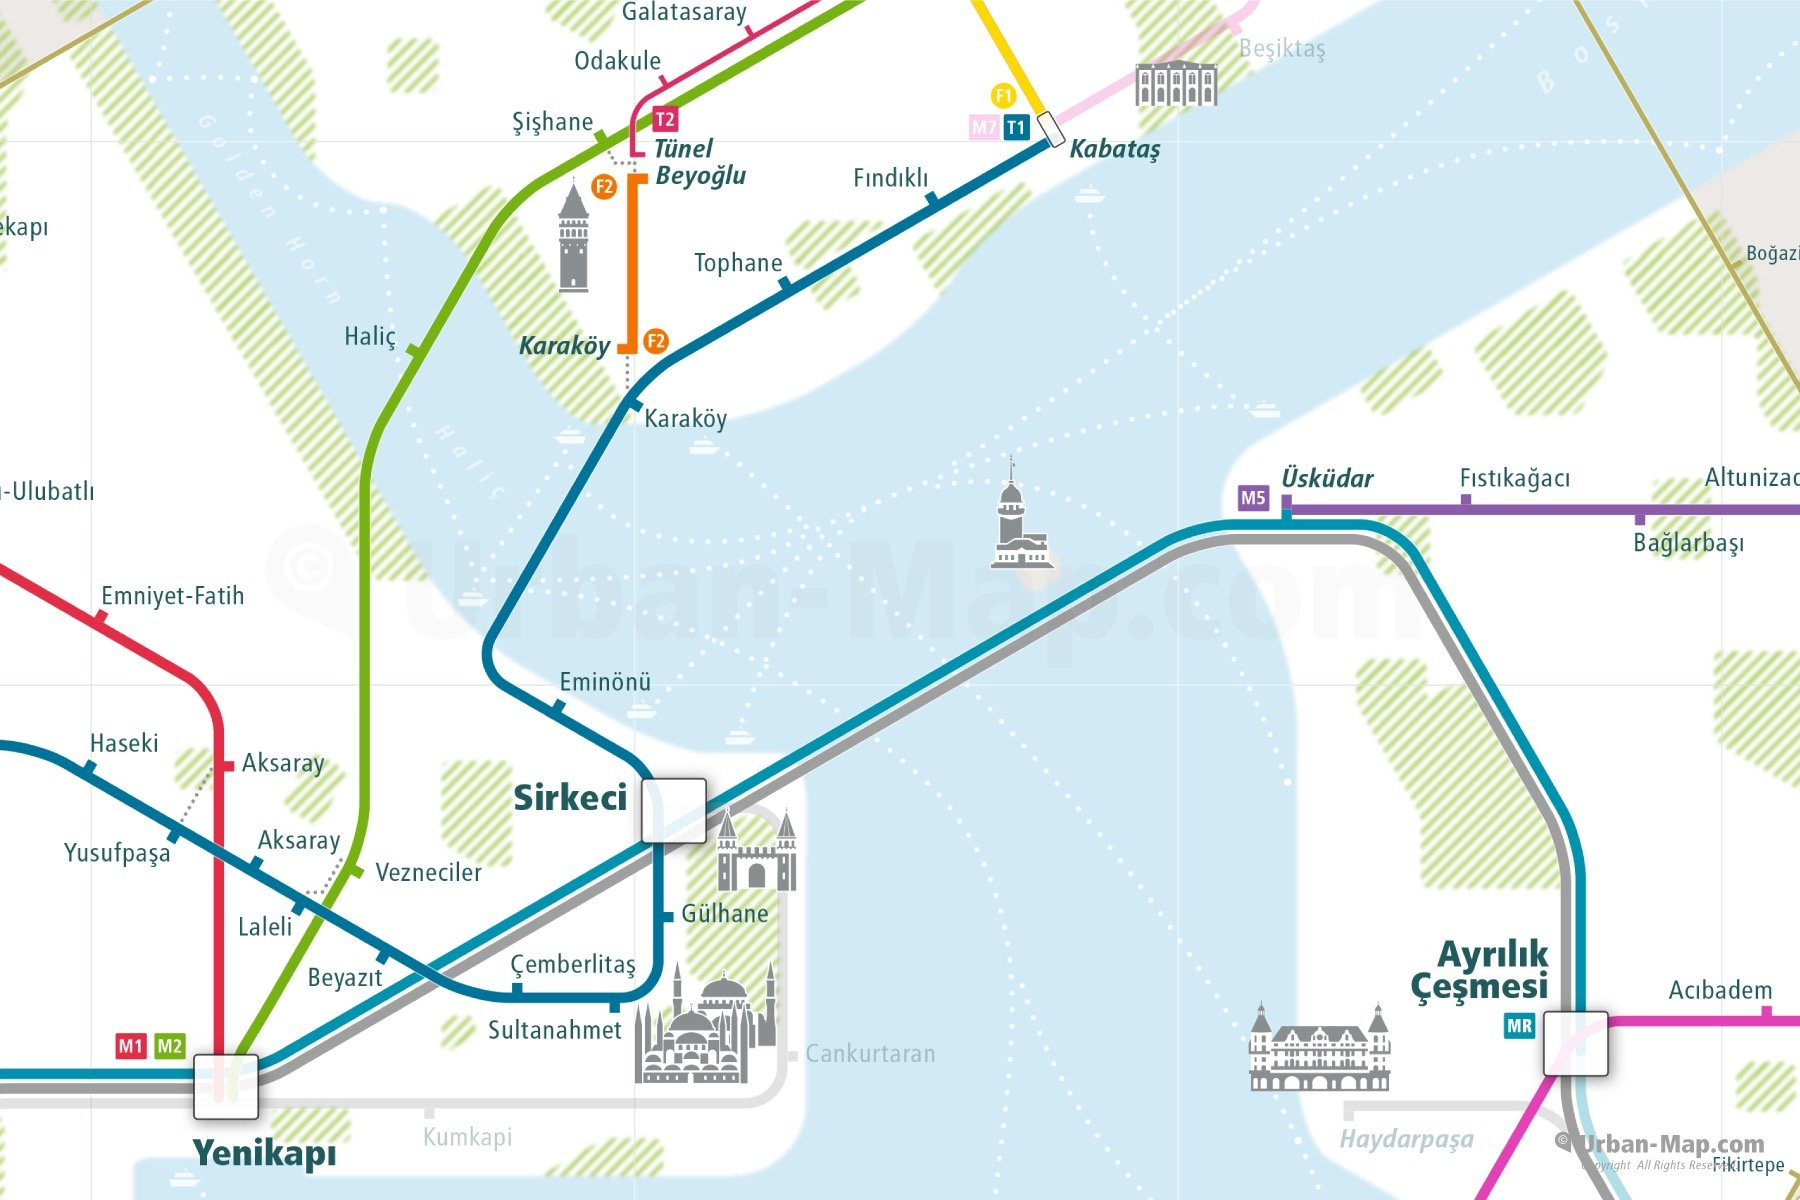 Istanbul City Rail Map shows the train and public transportation routes of Marmaray, Metro, Tram, Funiculars and Bus Rapid Transit BRT- Close-Up